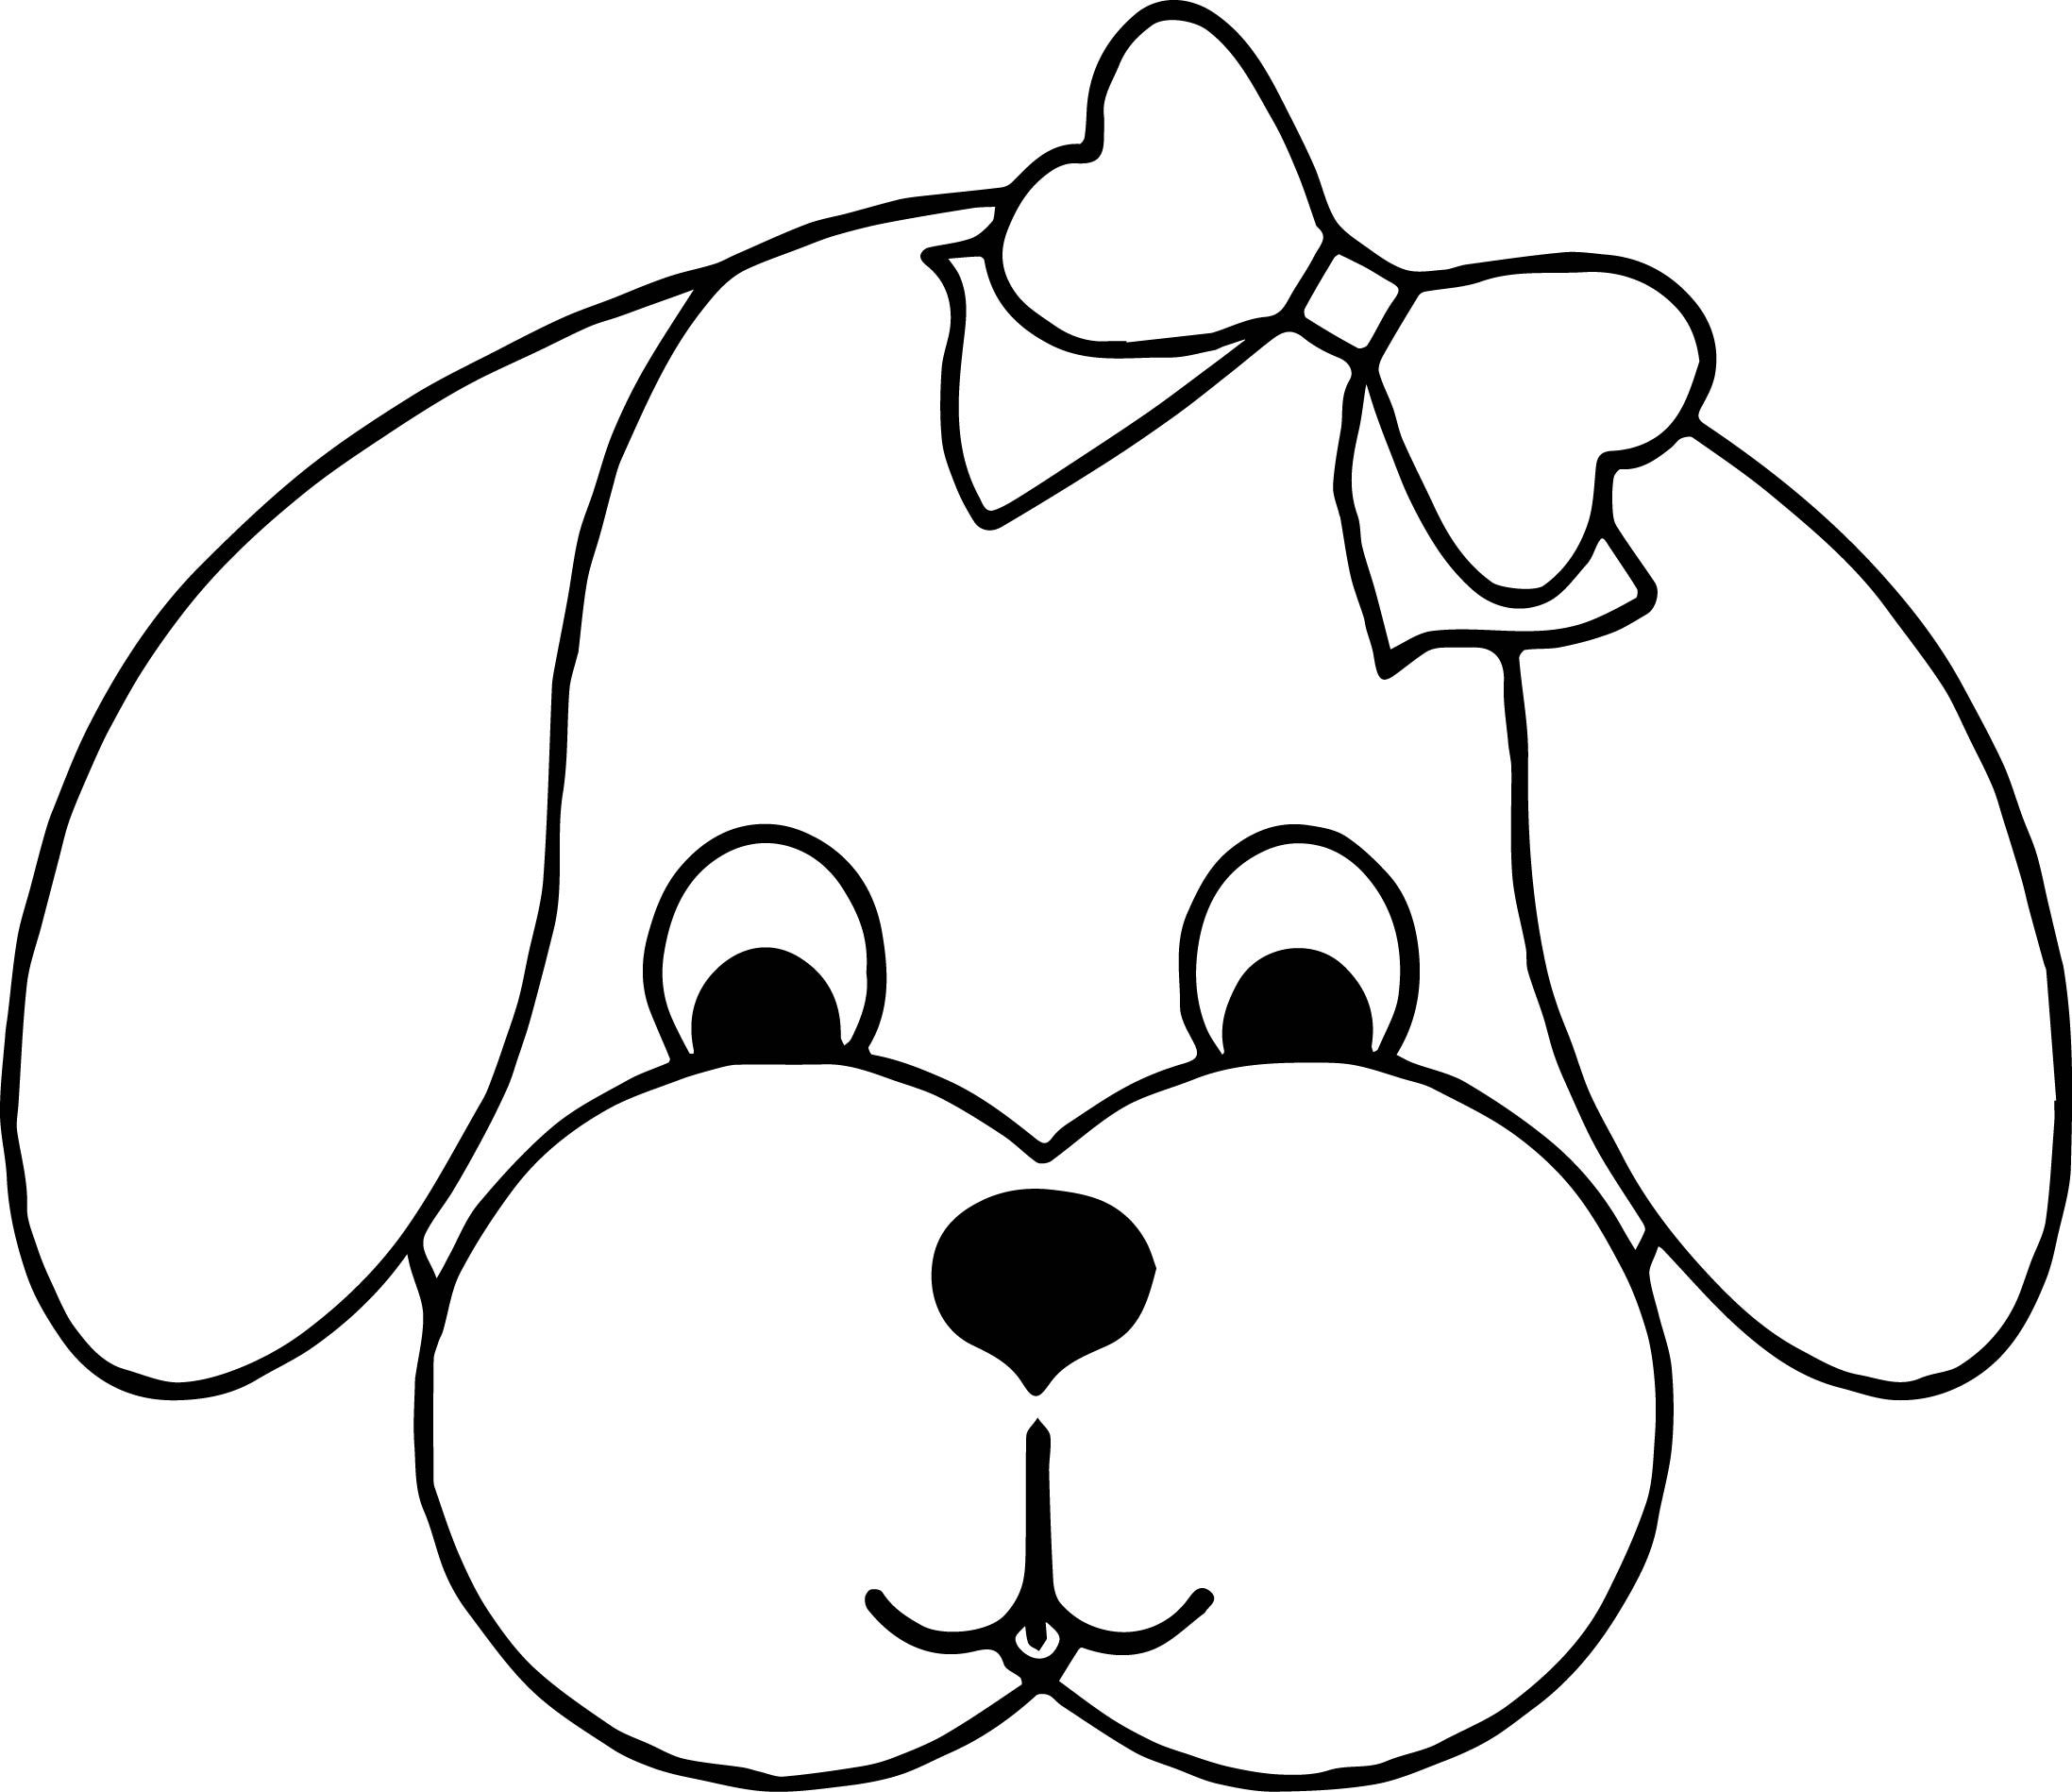 Dog Coloring Pages Wecoloringpage Dog Coloring Page Animal Coloring Pages Toy Story Coloring Pages